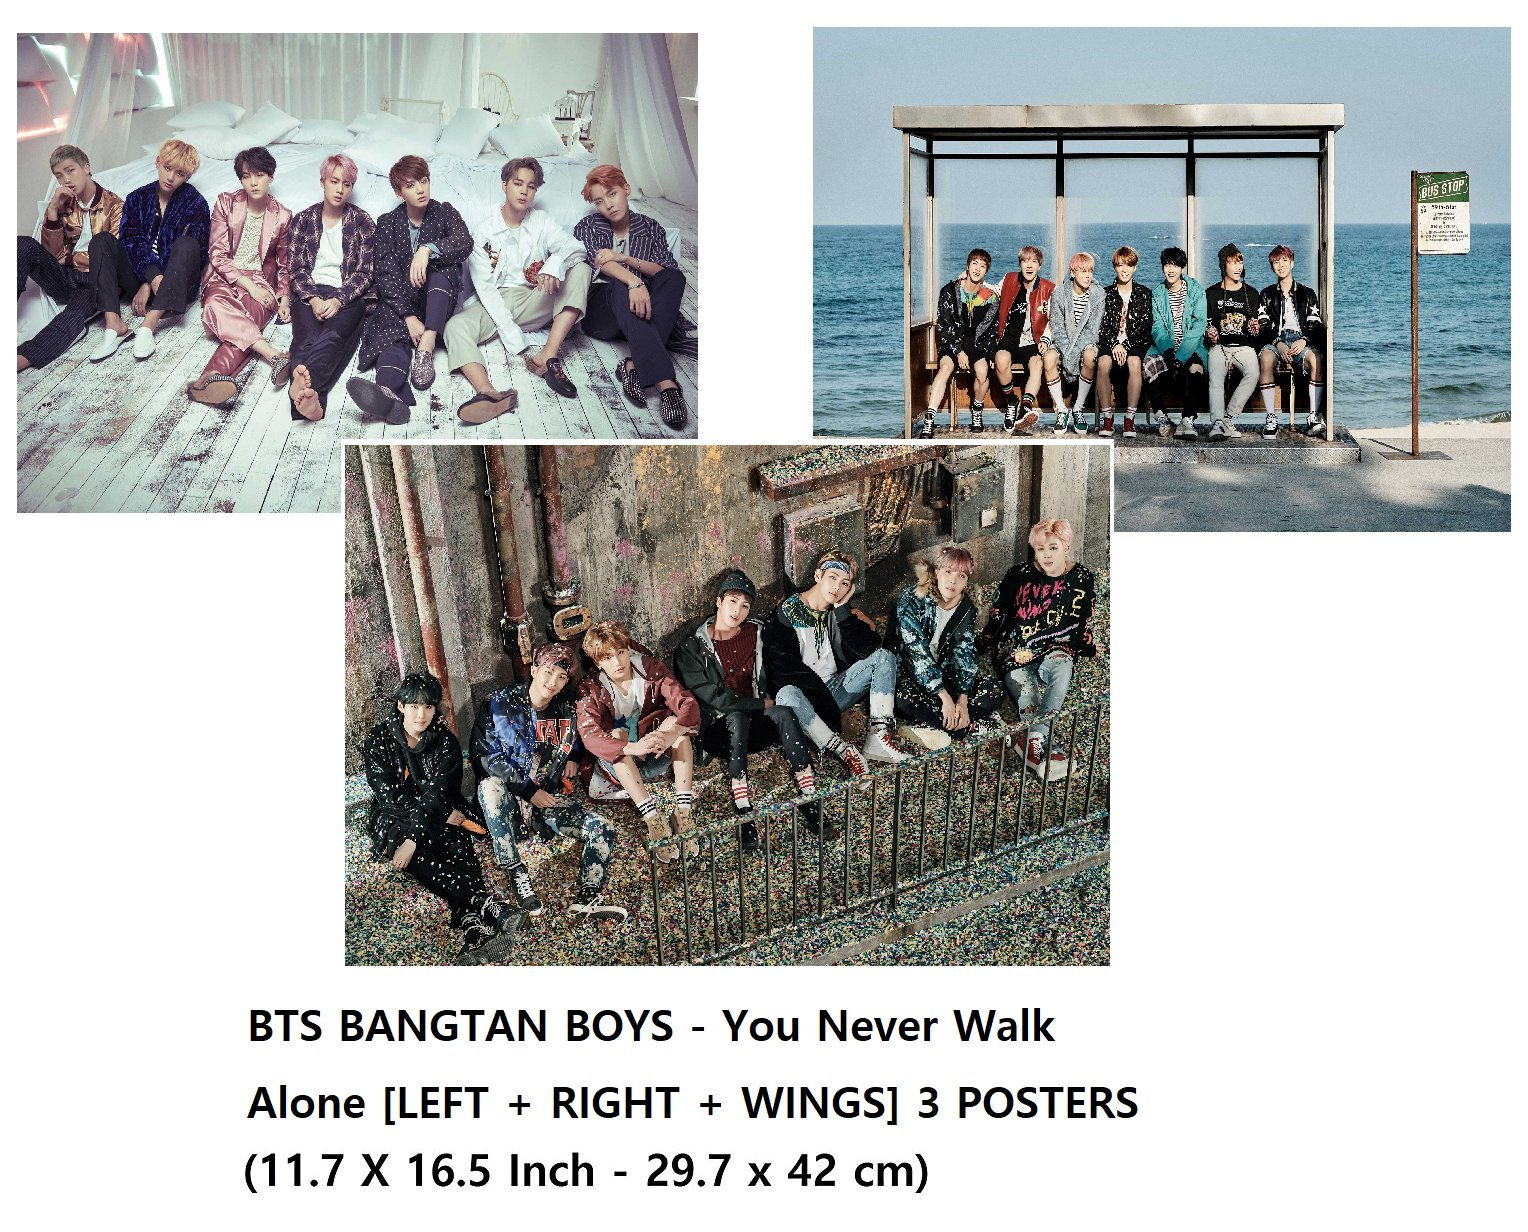 BTS BANGTAN BOYS - You Never Walk Alone [LEFT   RIGHT   WINGS] 3 POSTERS (30 X 42 cm)